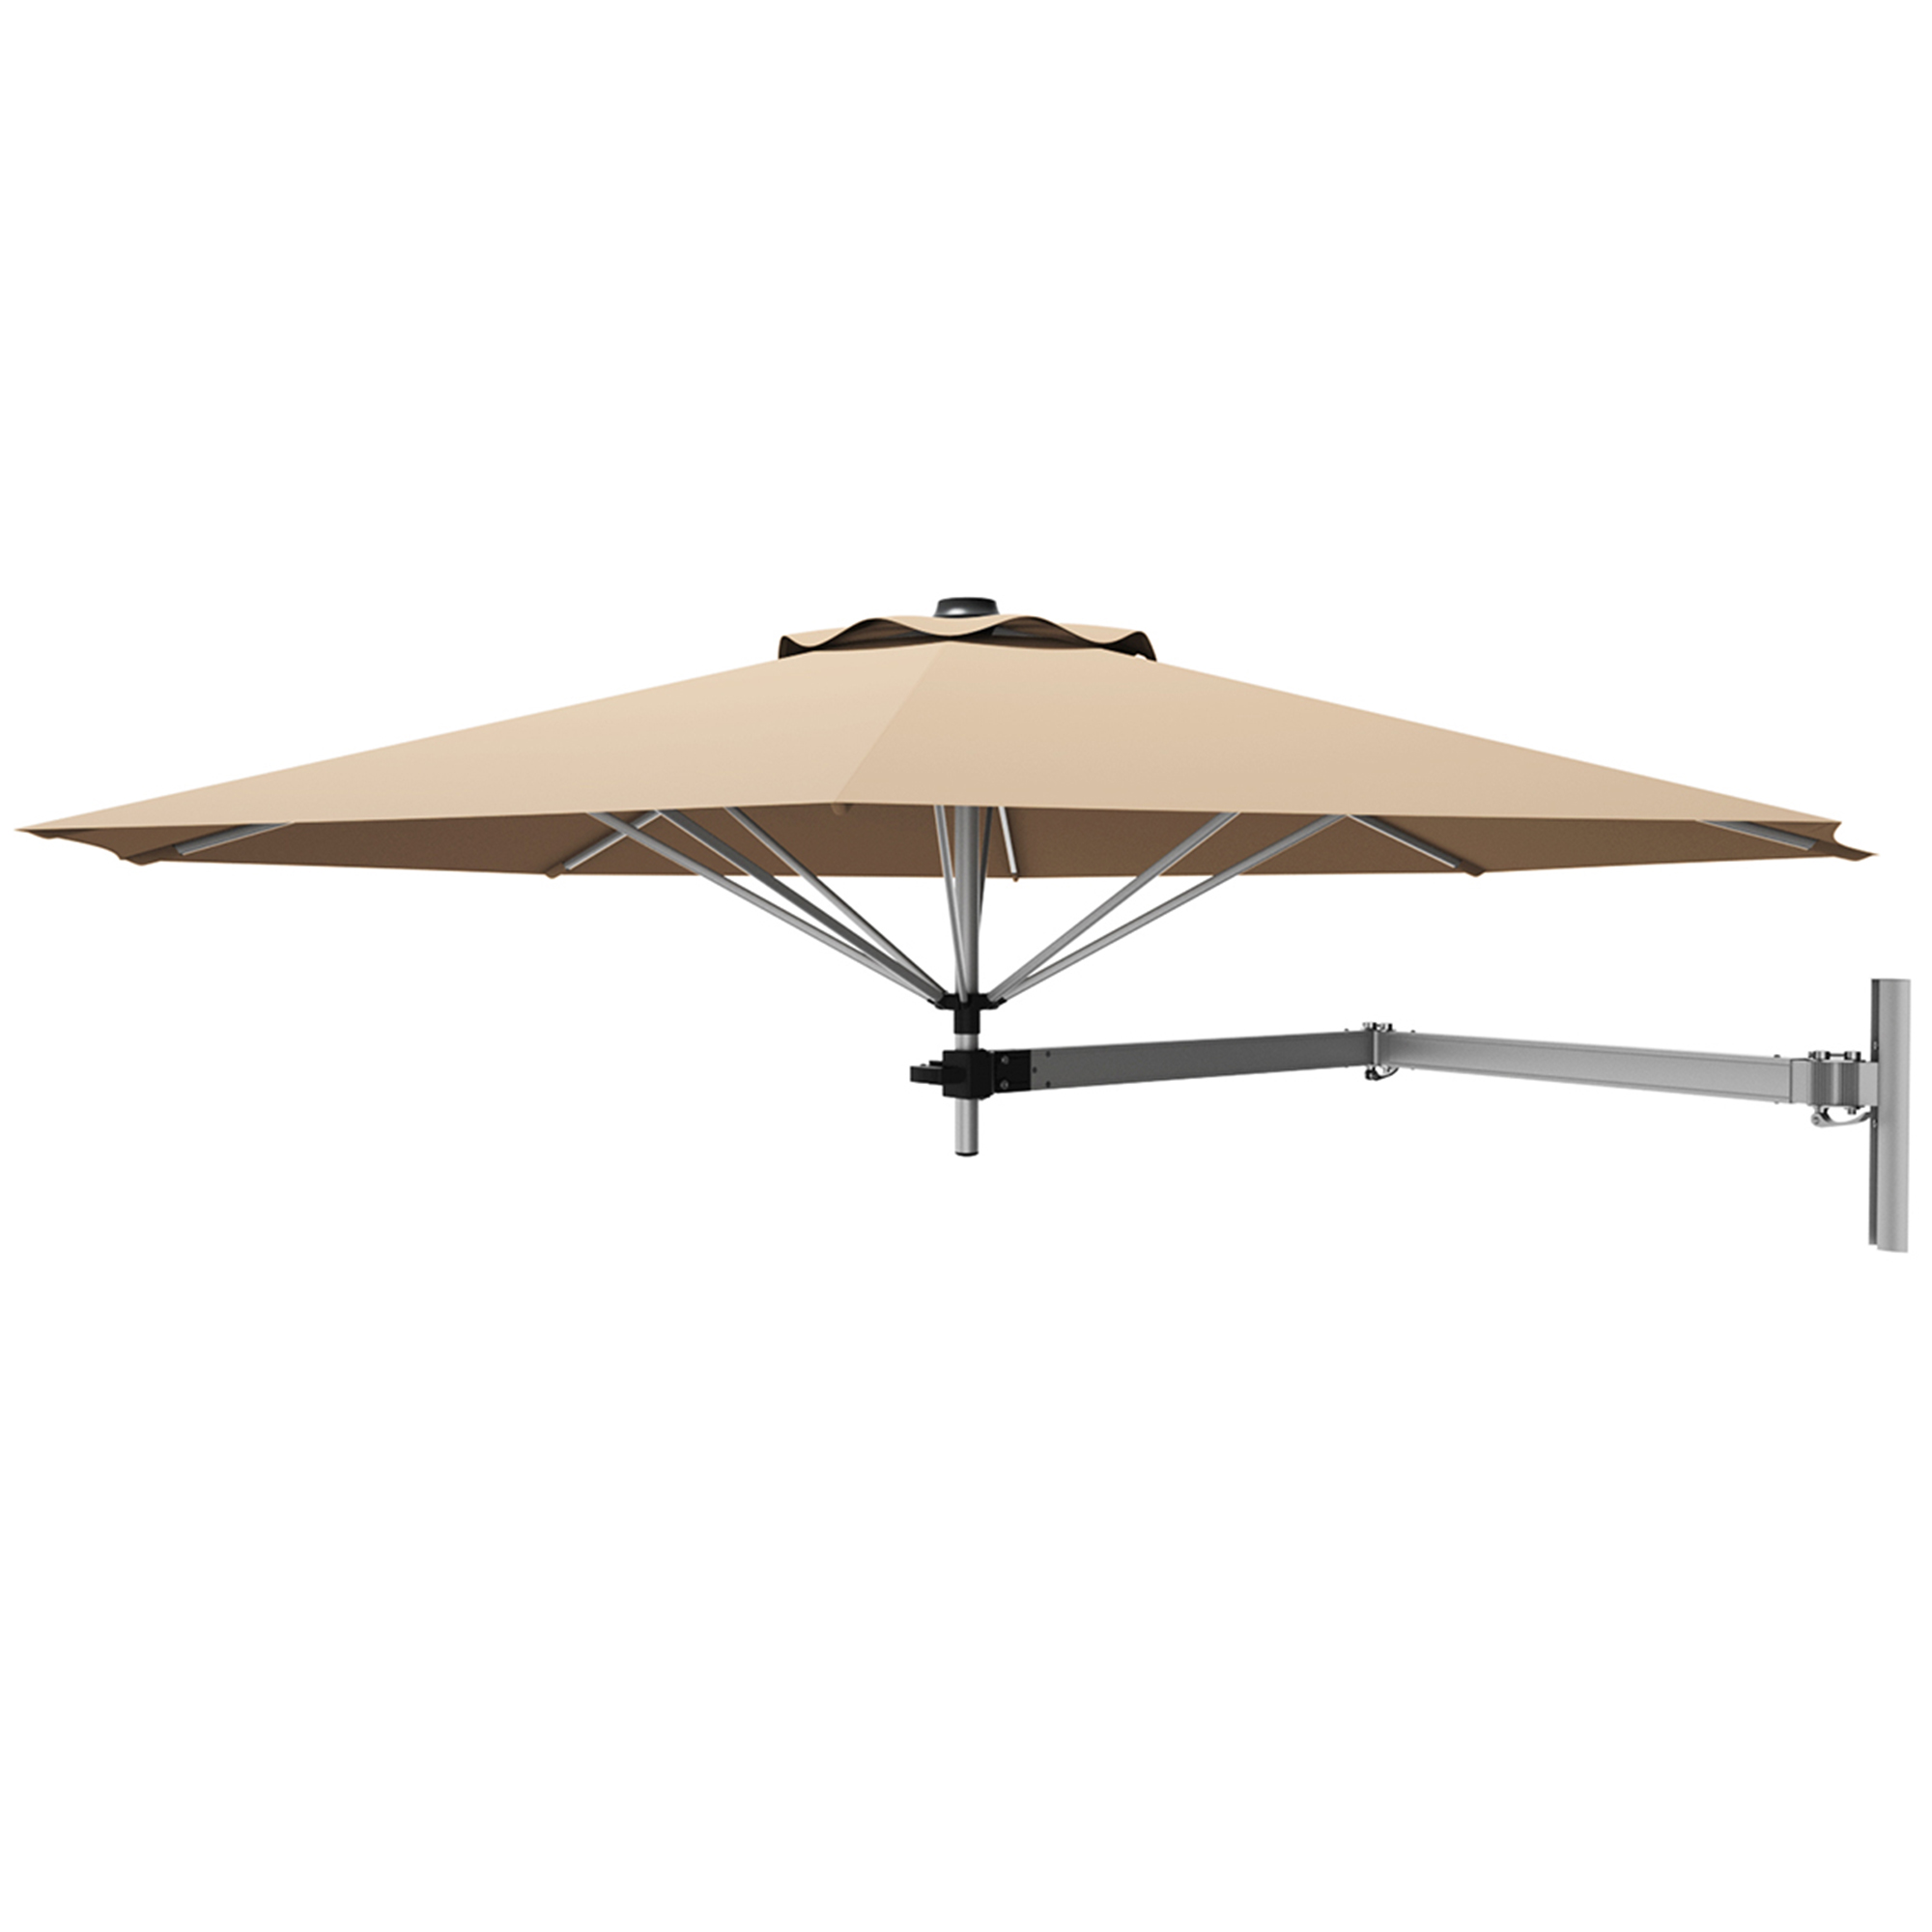 gymax 8ft patio wall mounted cantilever umbrella parsol w adjustable pole beige